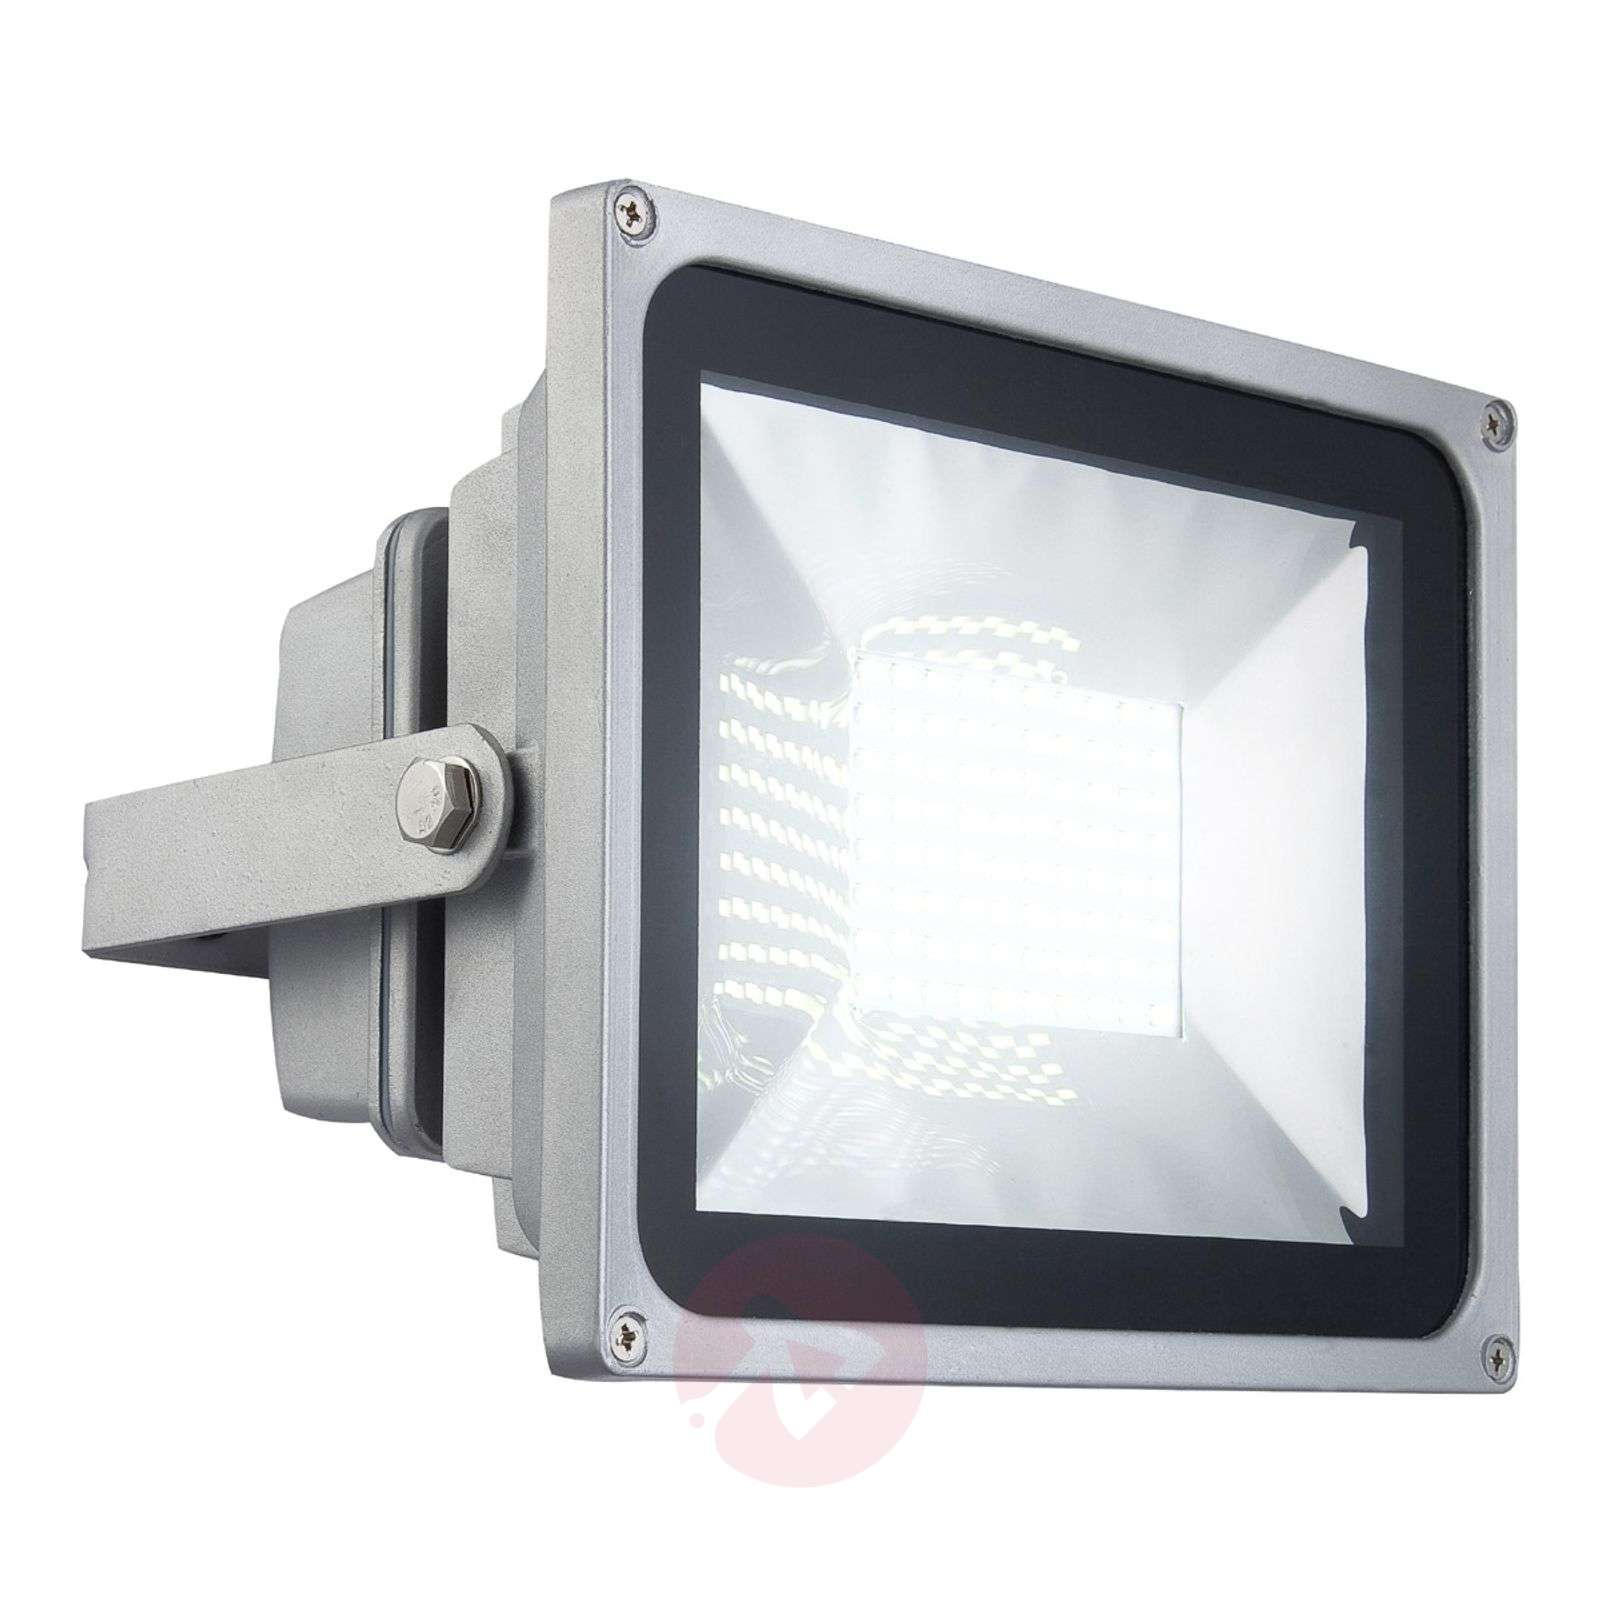 RADIATOR I Very Bright LED Exterior Spot-4014125-01